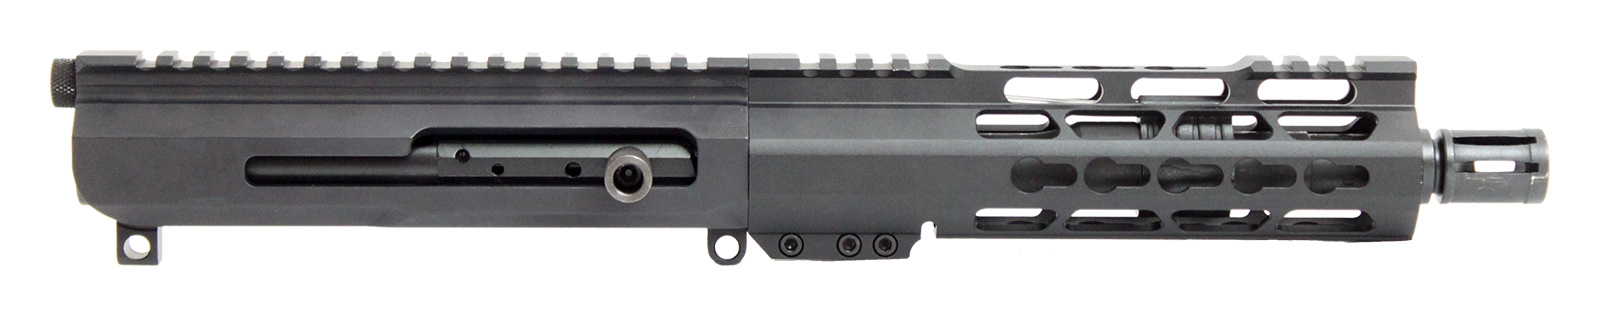 ar15-complete-upper-assembly-7-5-inch-223-wylde-side-charge-keymod-160016